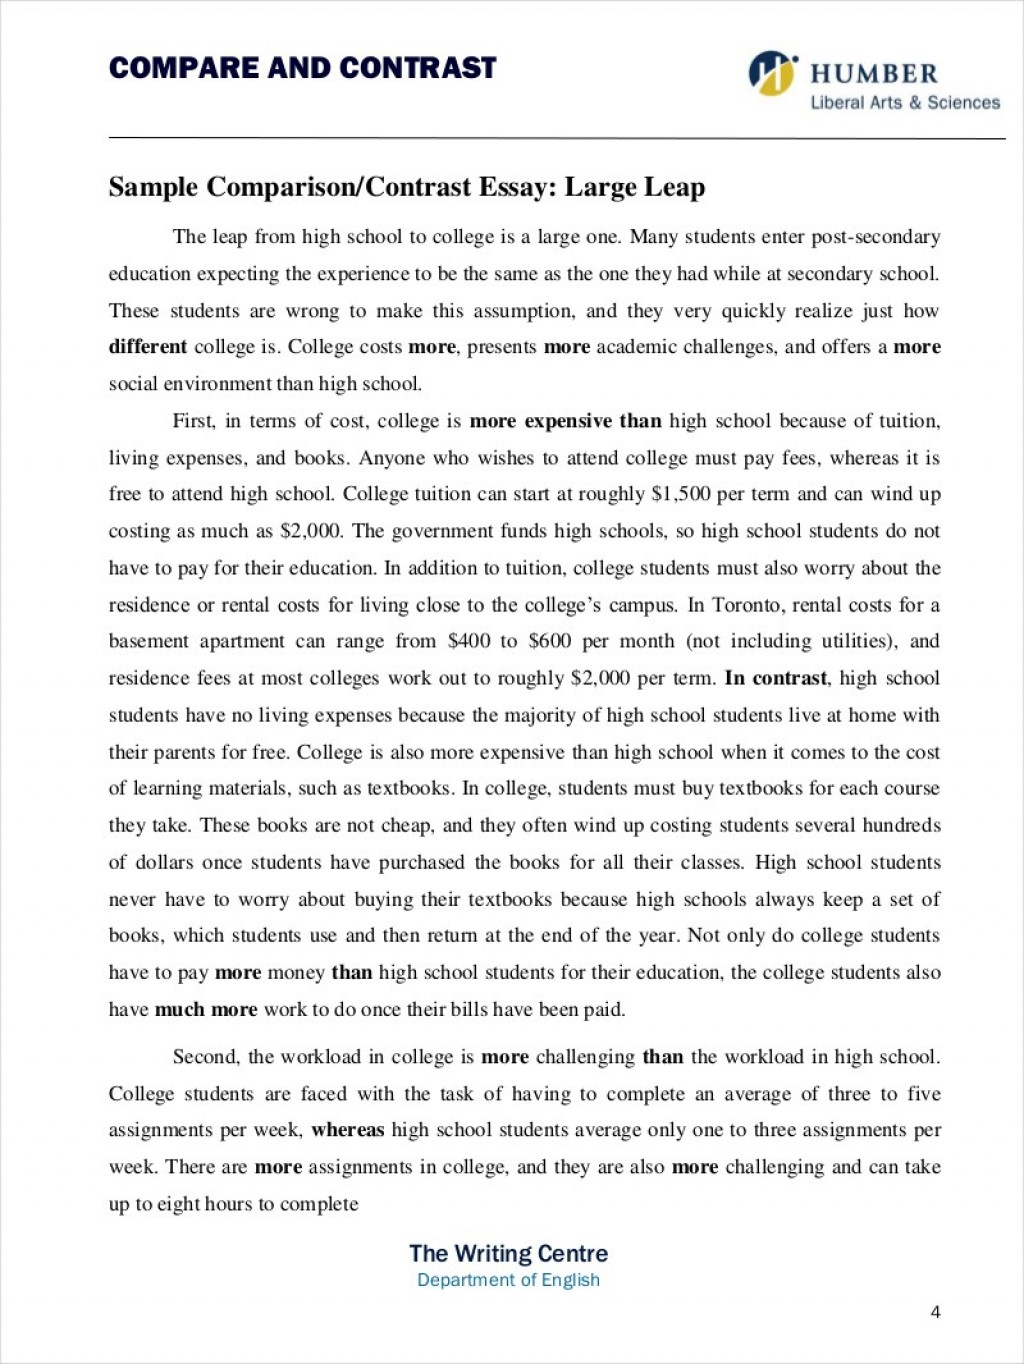 008 Comparing And Contrasting Essay Example Comparative Samples Free Pdf Format Download Examples Of Compare Contrast Unique Essays High School Vs College Topics Sample With Thesis Statement Large